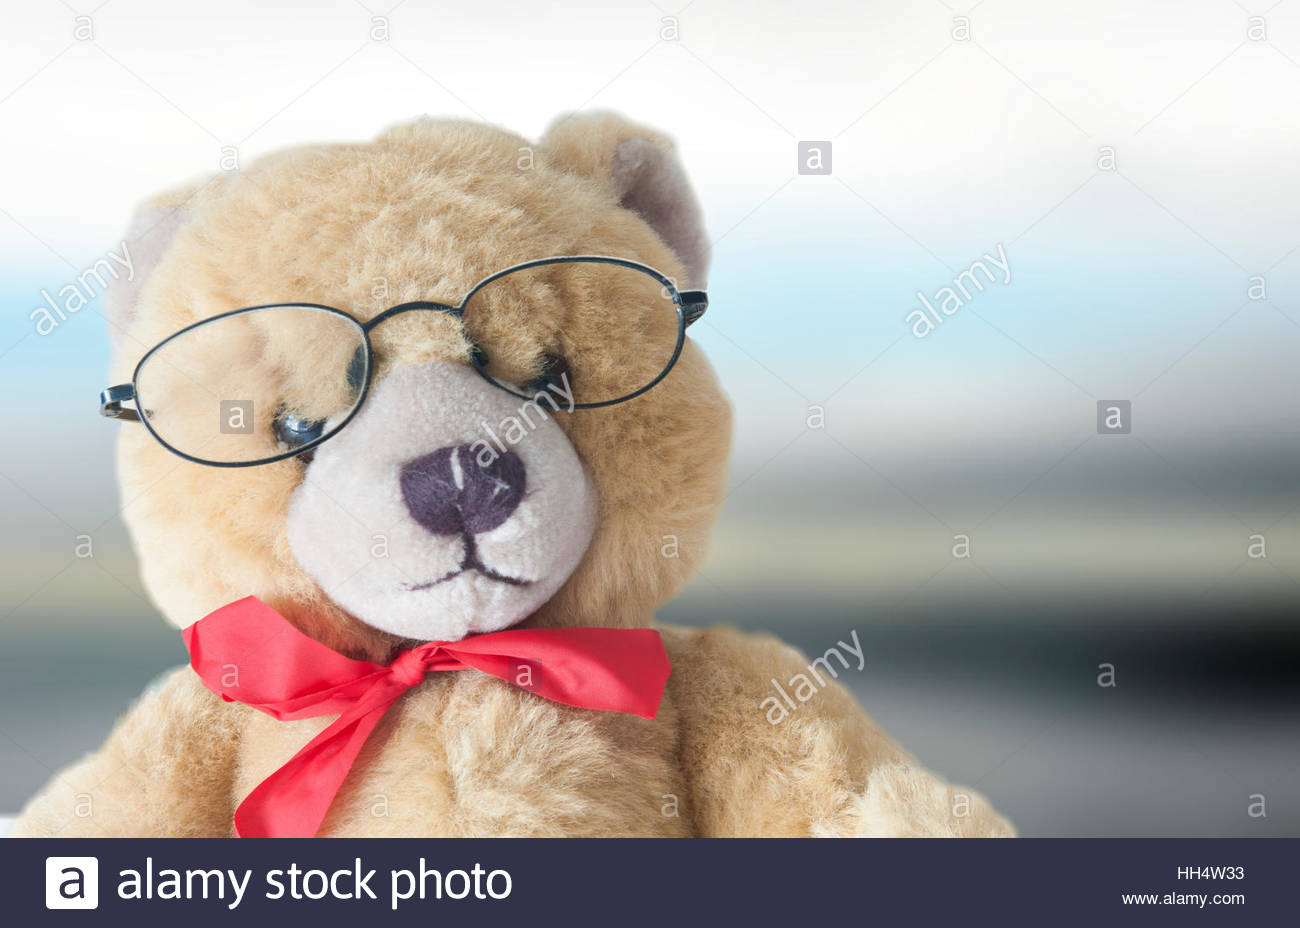 Teddy bear wearing glasses with one lens missing. - Stock Image